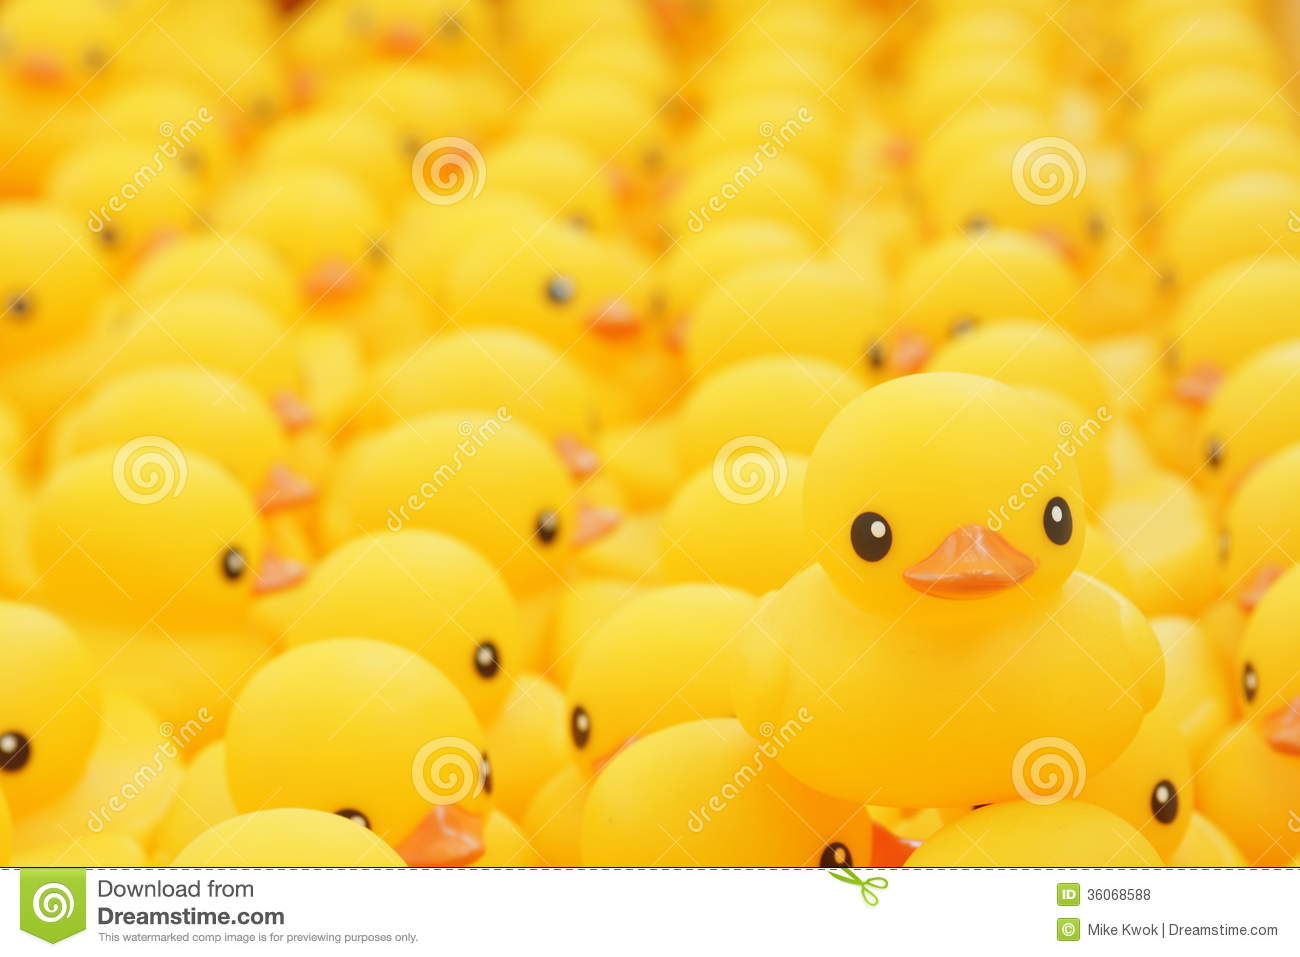 Funny Animal Wallpapers With Quotes Download Rubber Ducky Wallpapers Gallery